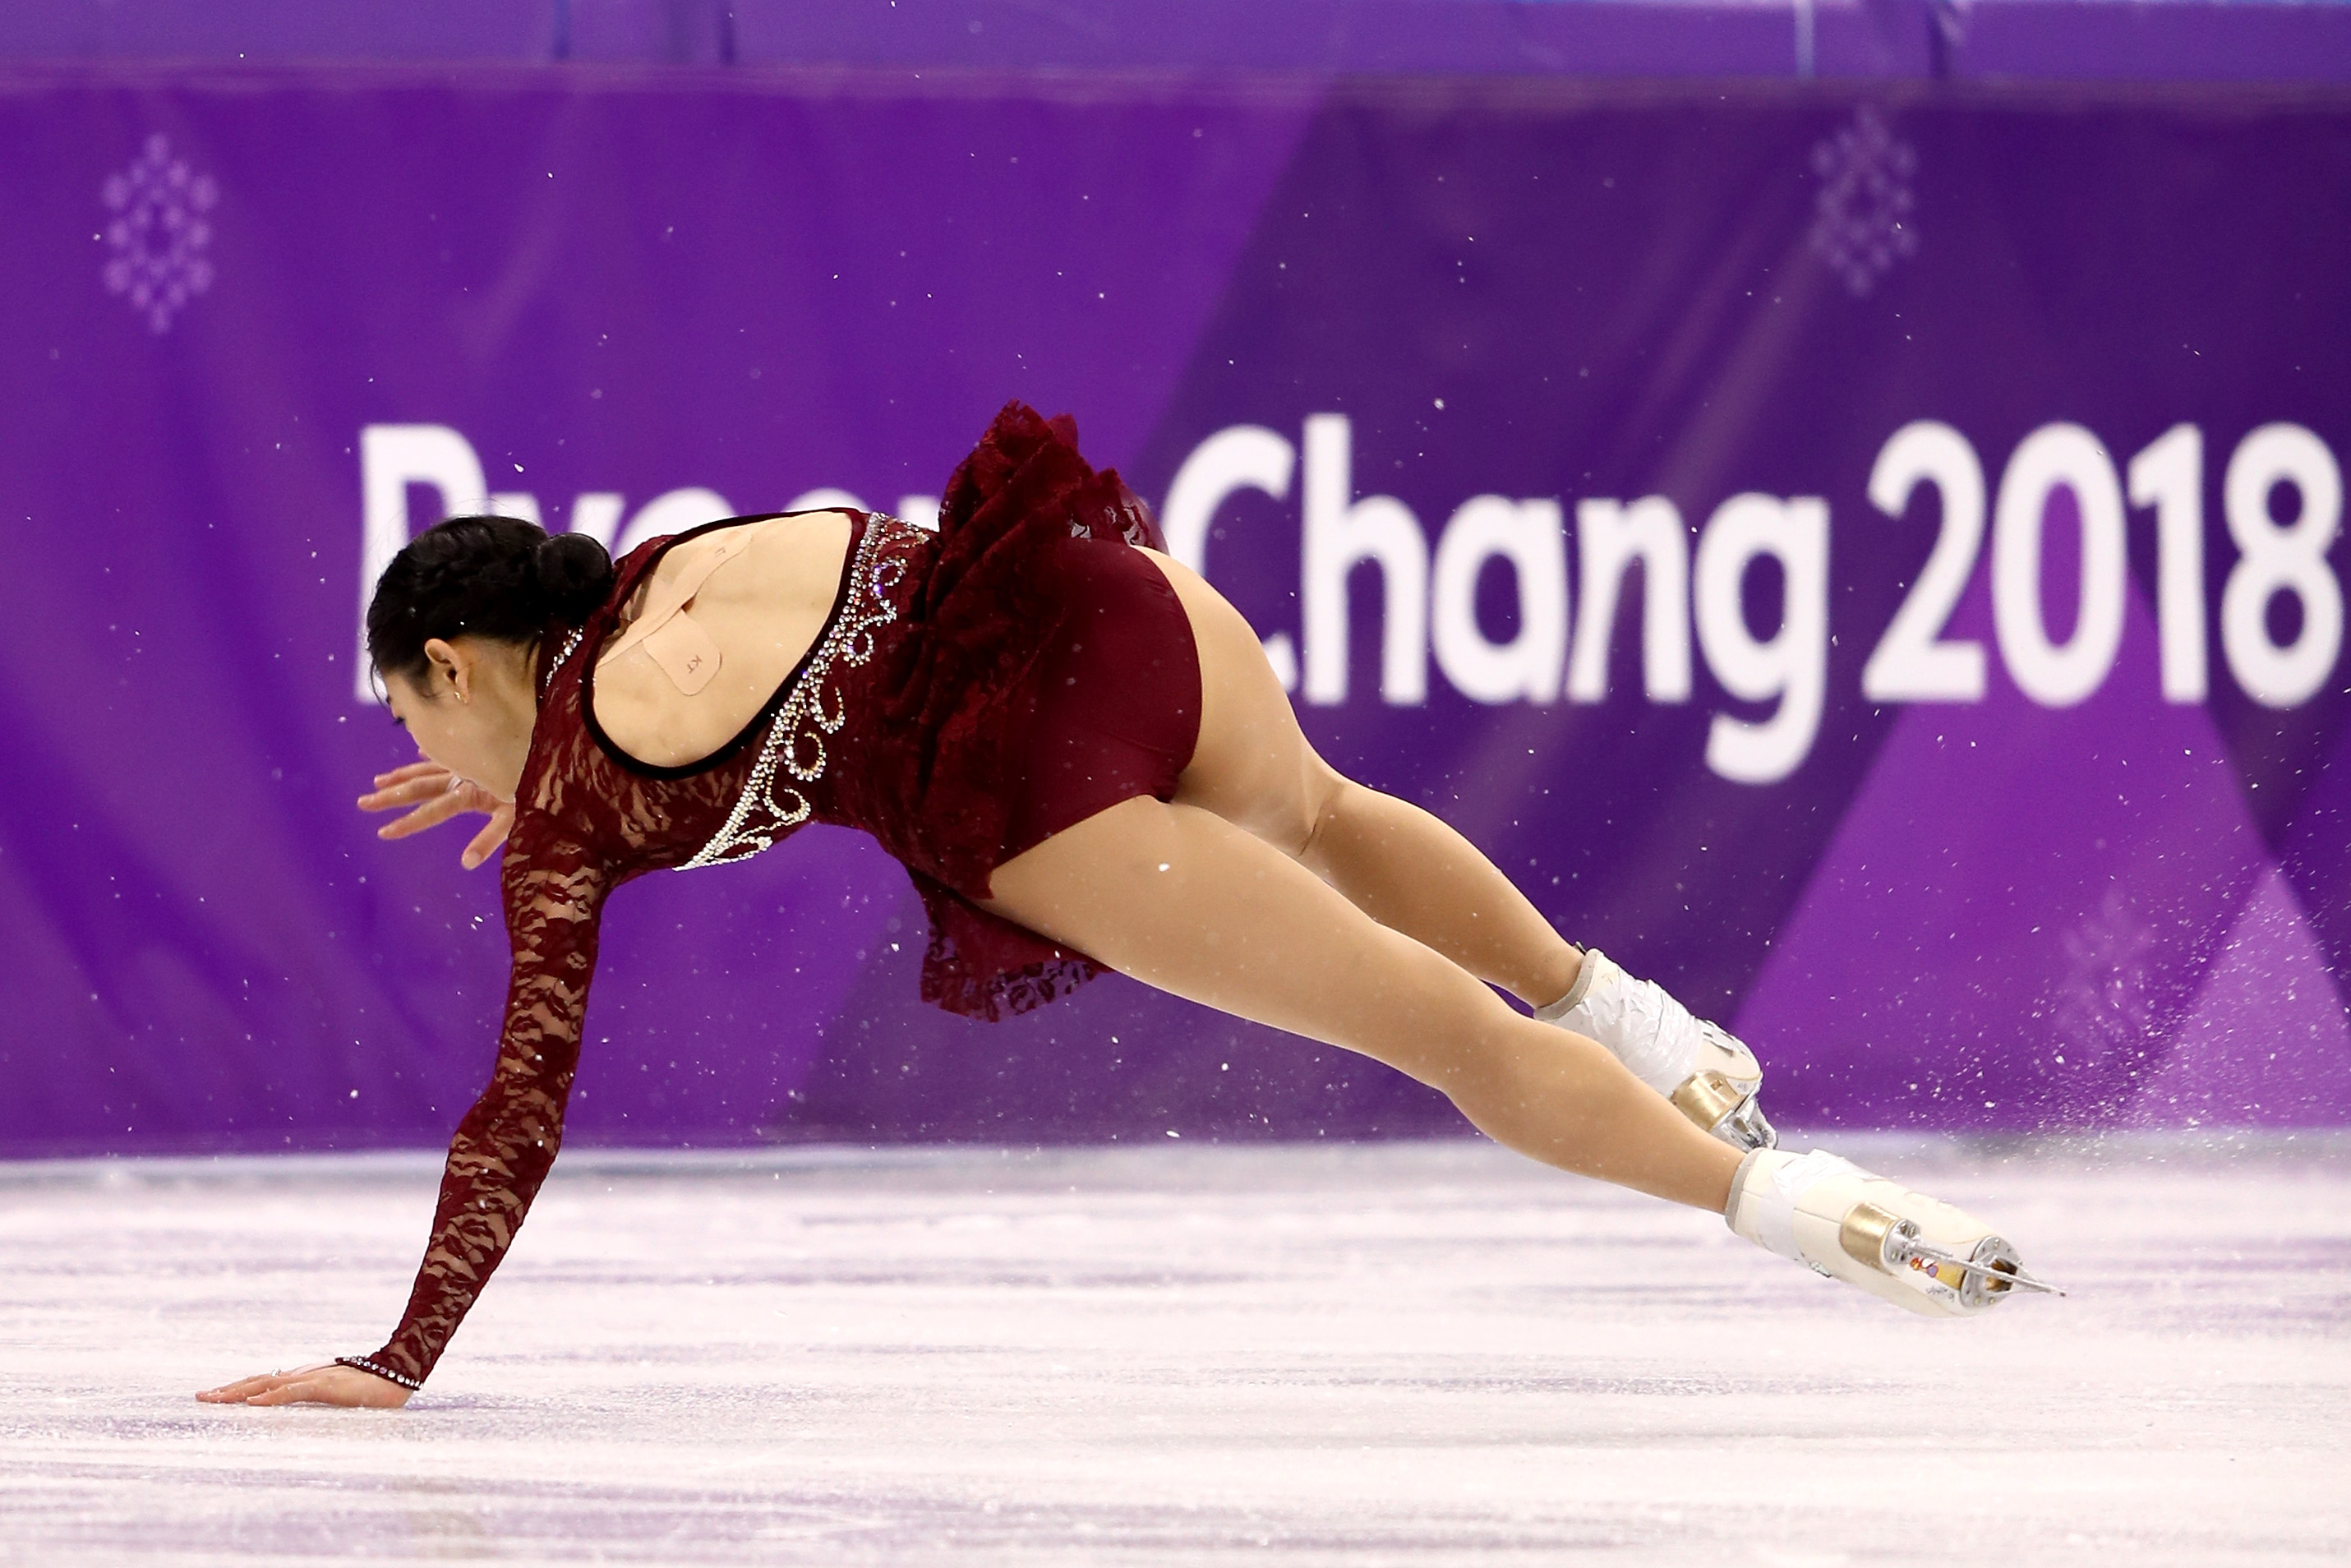 Mirai Nagasu of the United States falls while competing during the Ladies Single Skating Short Program on day twelve of the PyeongChang 2018 Winter Olympic Games at Gangneung Ice Arena on February 21, 2018 in Gangneung, South Korea